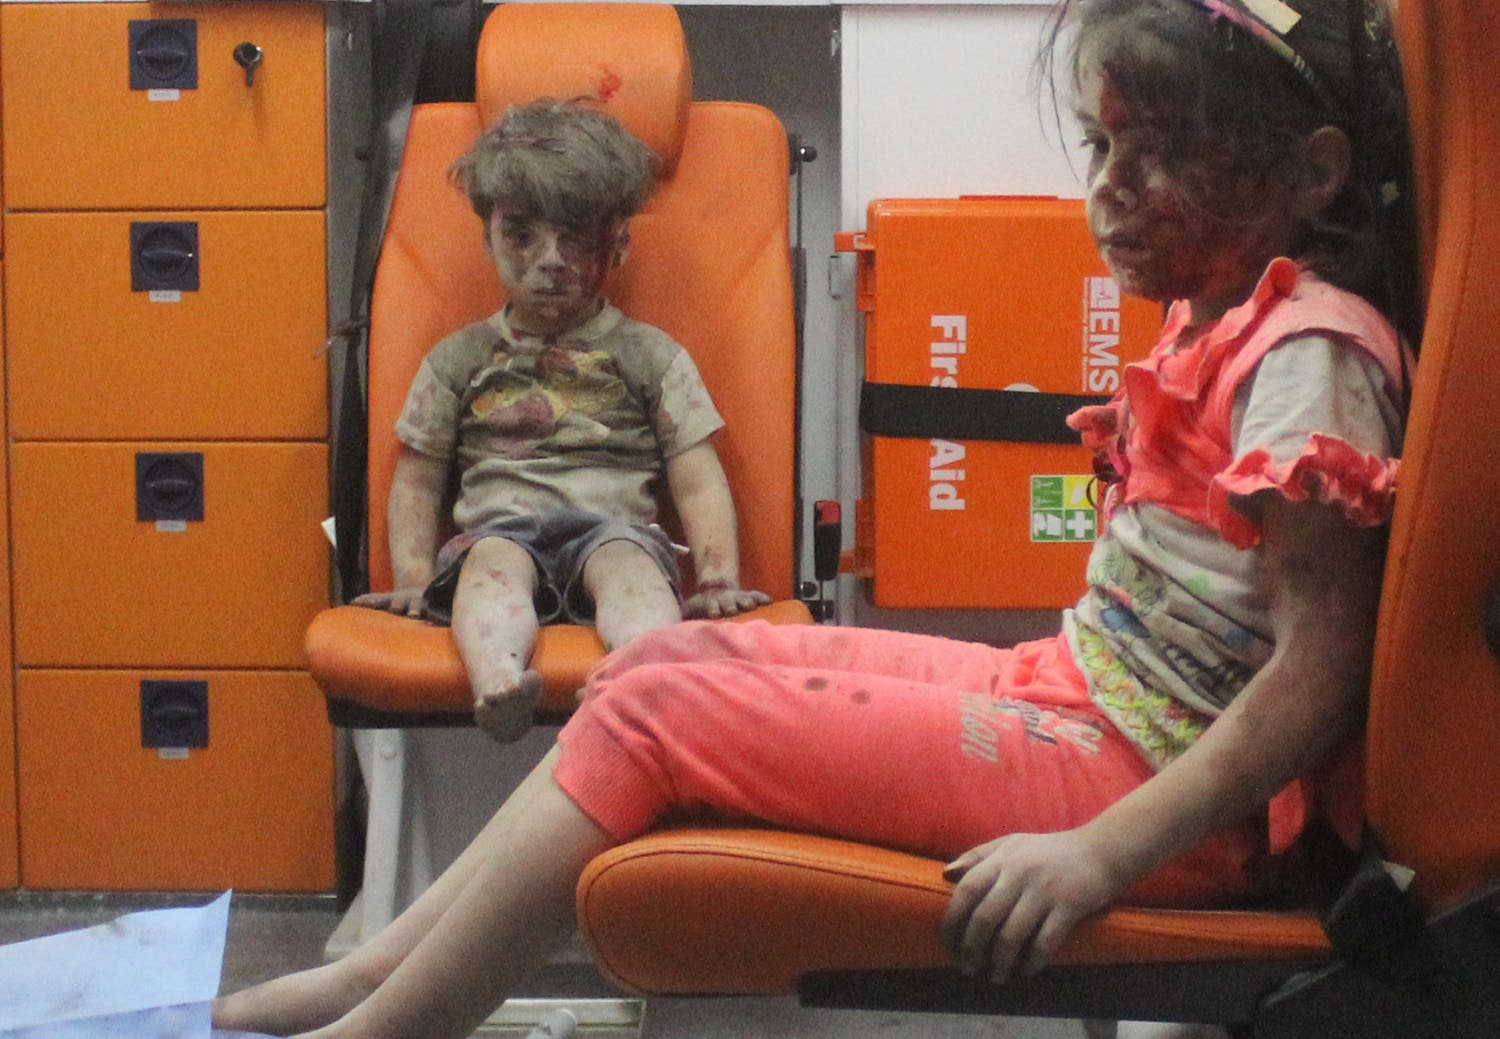 Five-year-old Omran Daqneesh, with bloodied face, sits with his sister inside an ambulance after they were rescued following an airstrike in the rebel-held al-Qaterji neighbourhood of Aleppo. (Reuters)